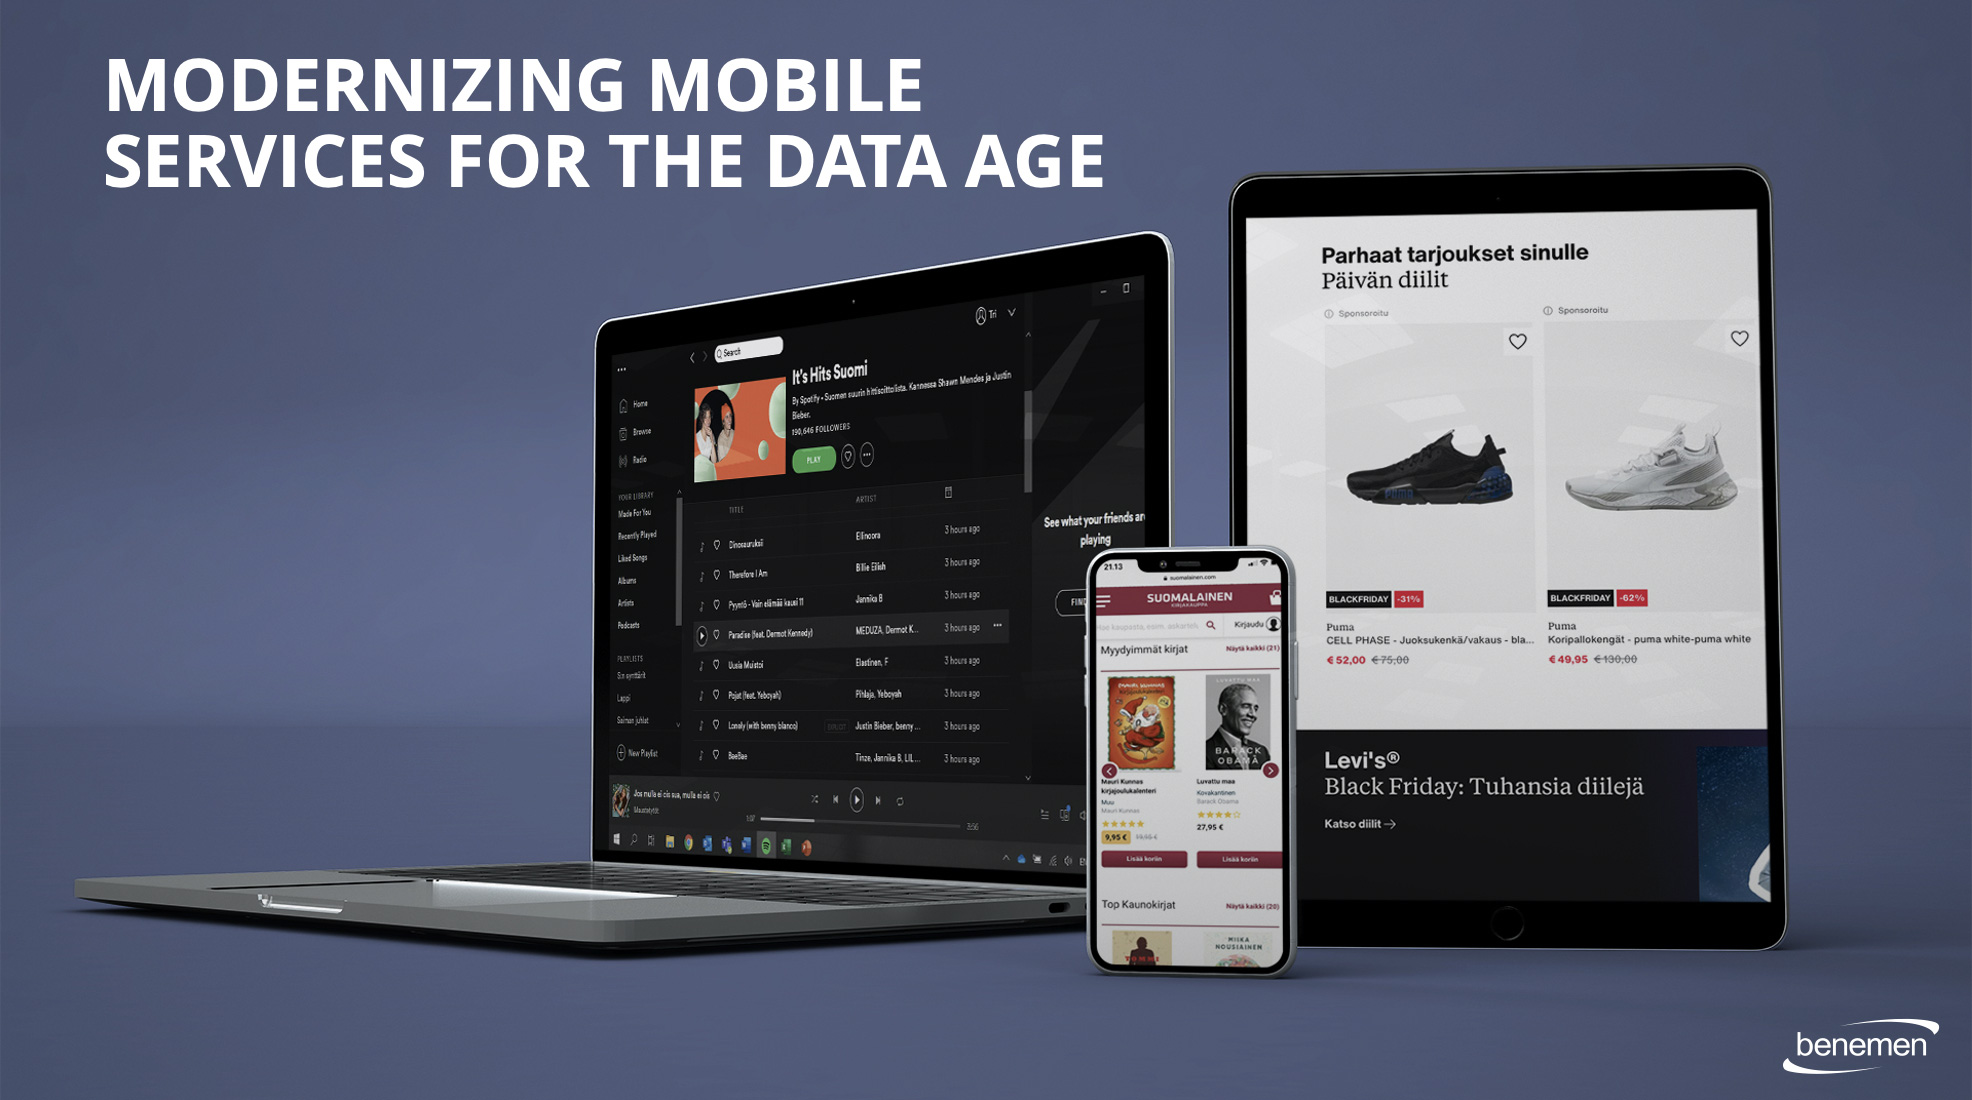 modernizing-mobile-services-for-the-data-age